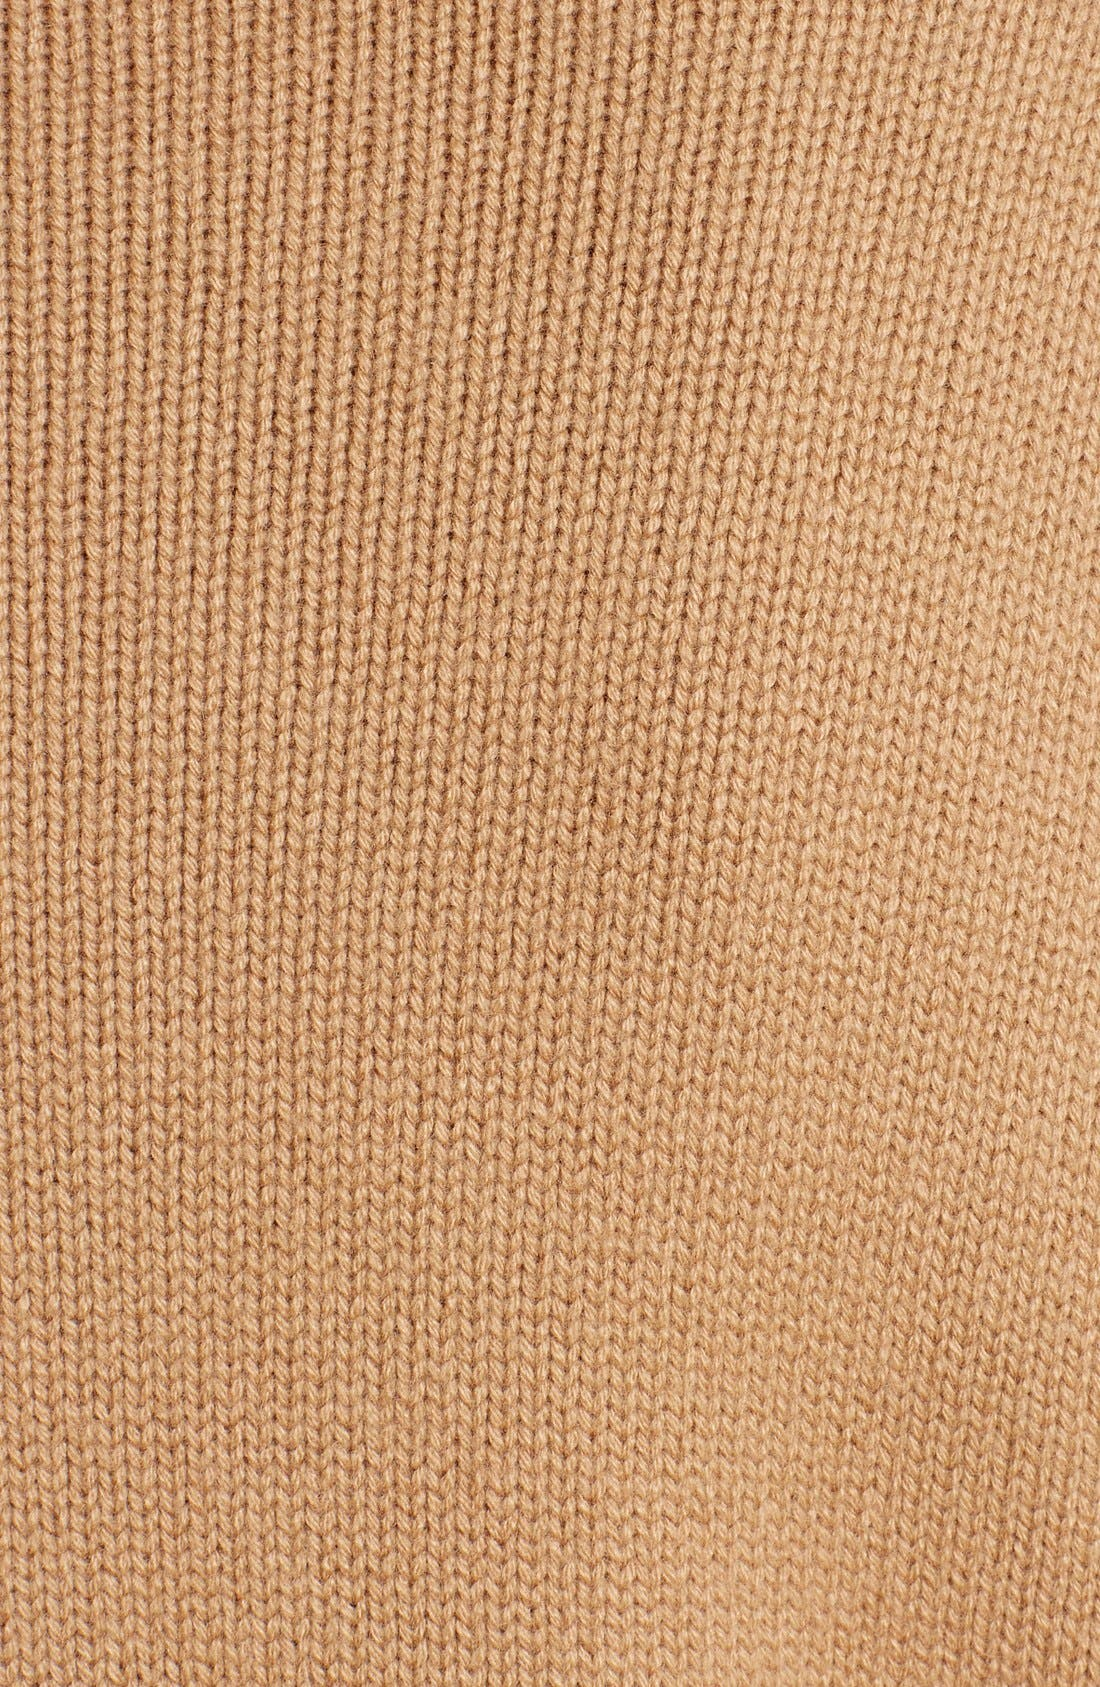 Studded Crewneck Cashmere Sweater,                             Alternate thumbnail 3, color,                             Camel